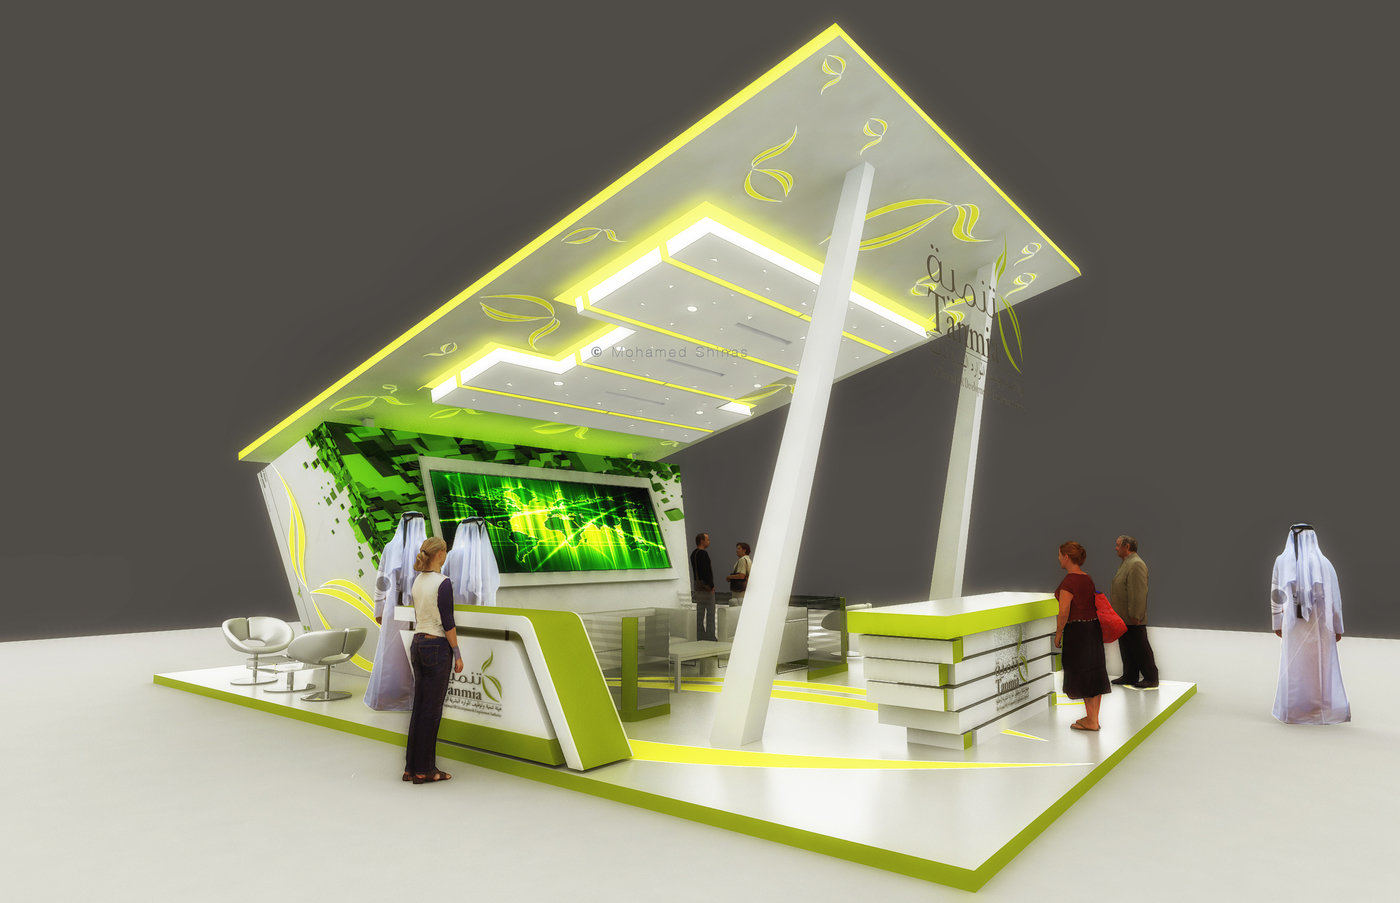 3d Exhibition Stand Design Jobs In Dubai : Exhibition stand design by mohamed shinas at coroflot